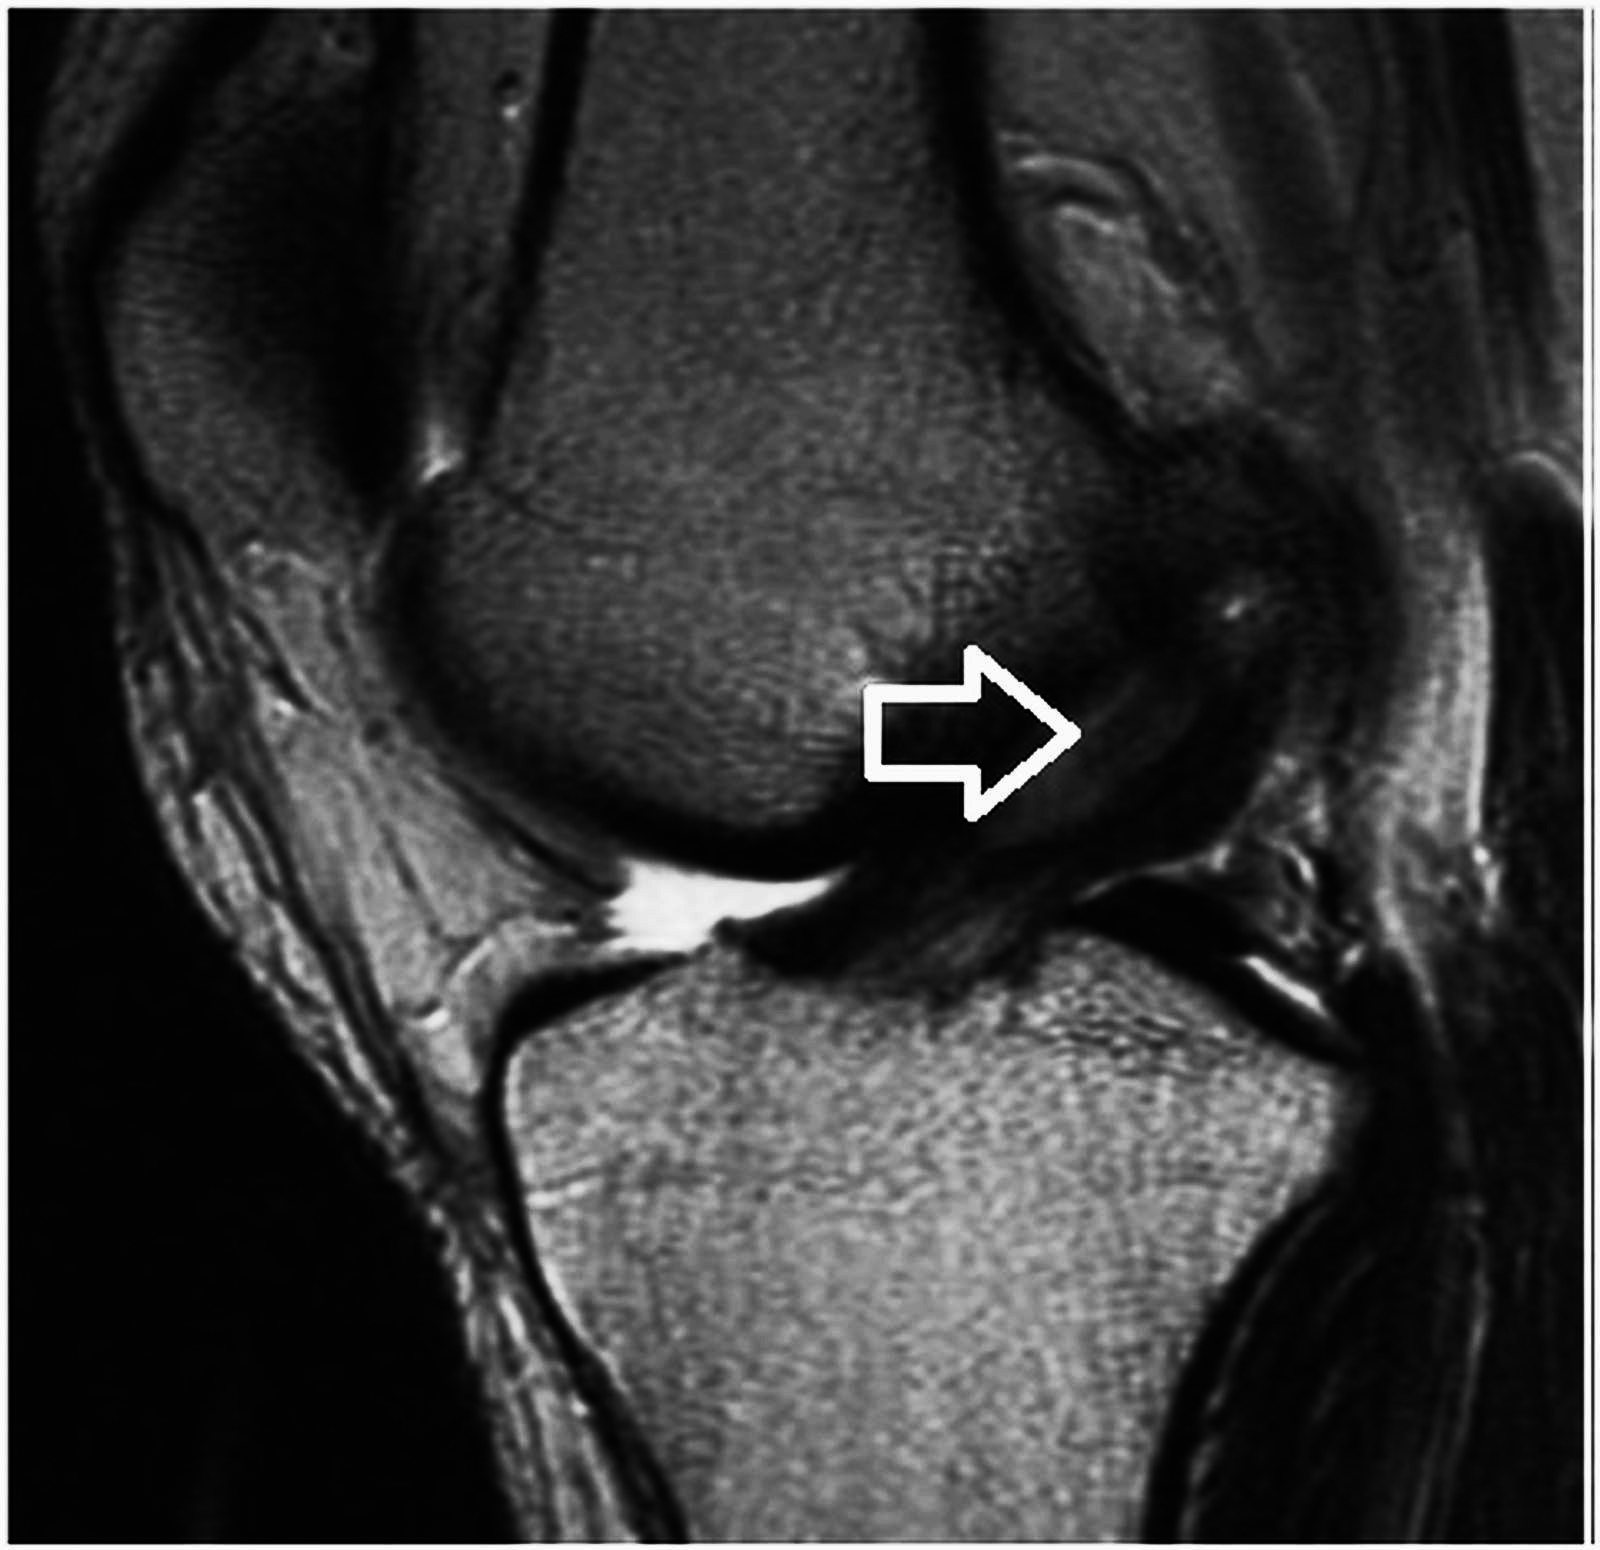 Cureus | Anterior Cruciate Ligament Ganglion Cyst and Mucoid